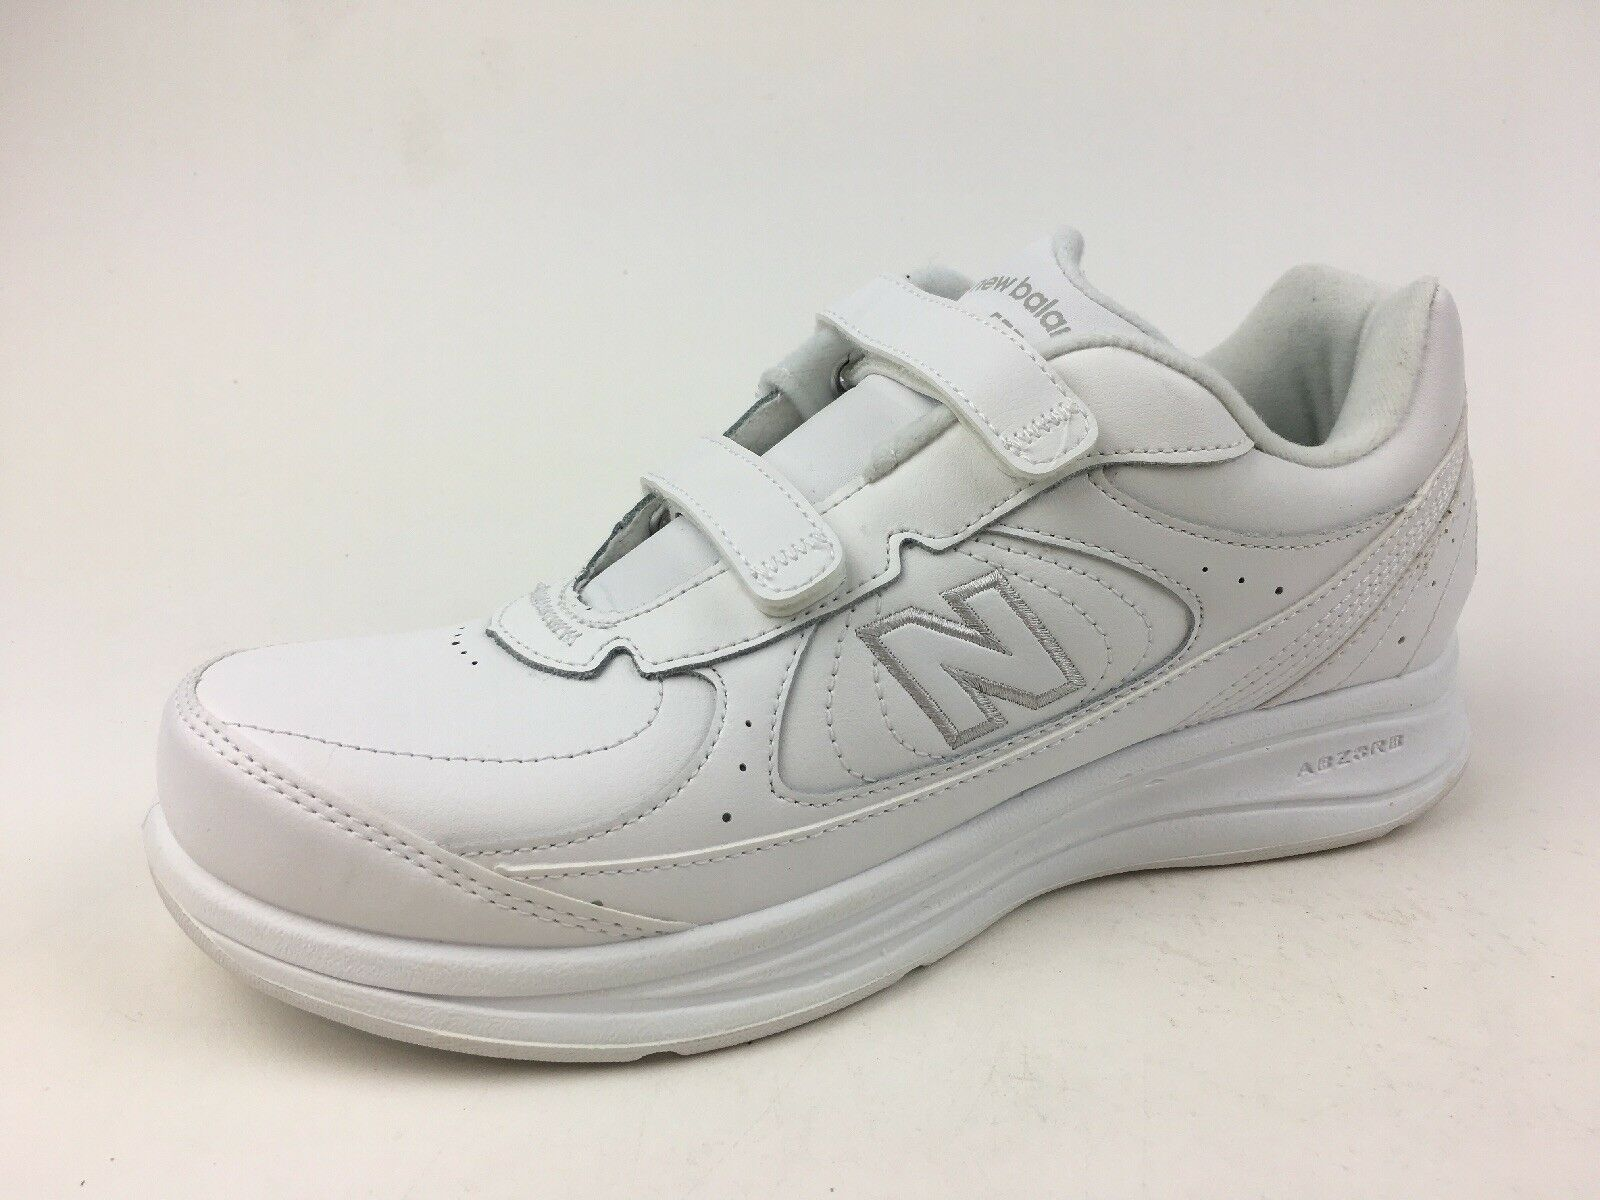 New Balance Women's WW577VW Hoop & Loop White Athletic Athletic Athletic shoes Narrow Sz 10 2A 275 41c46d